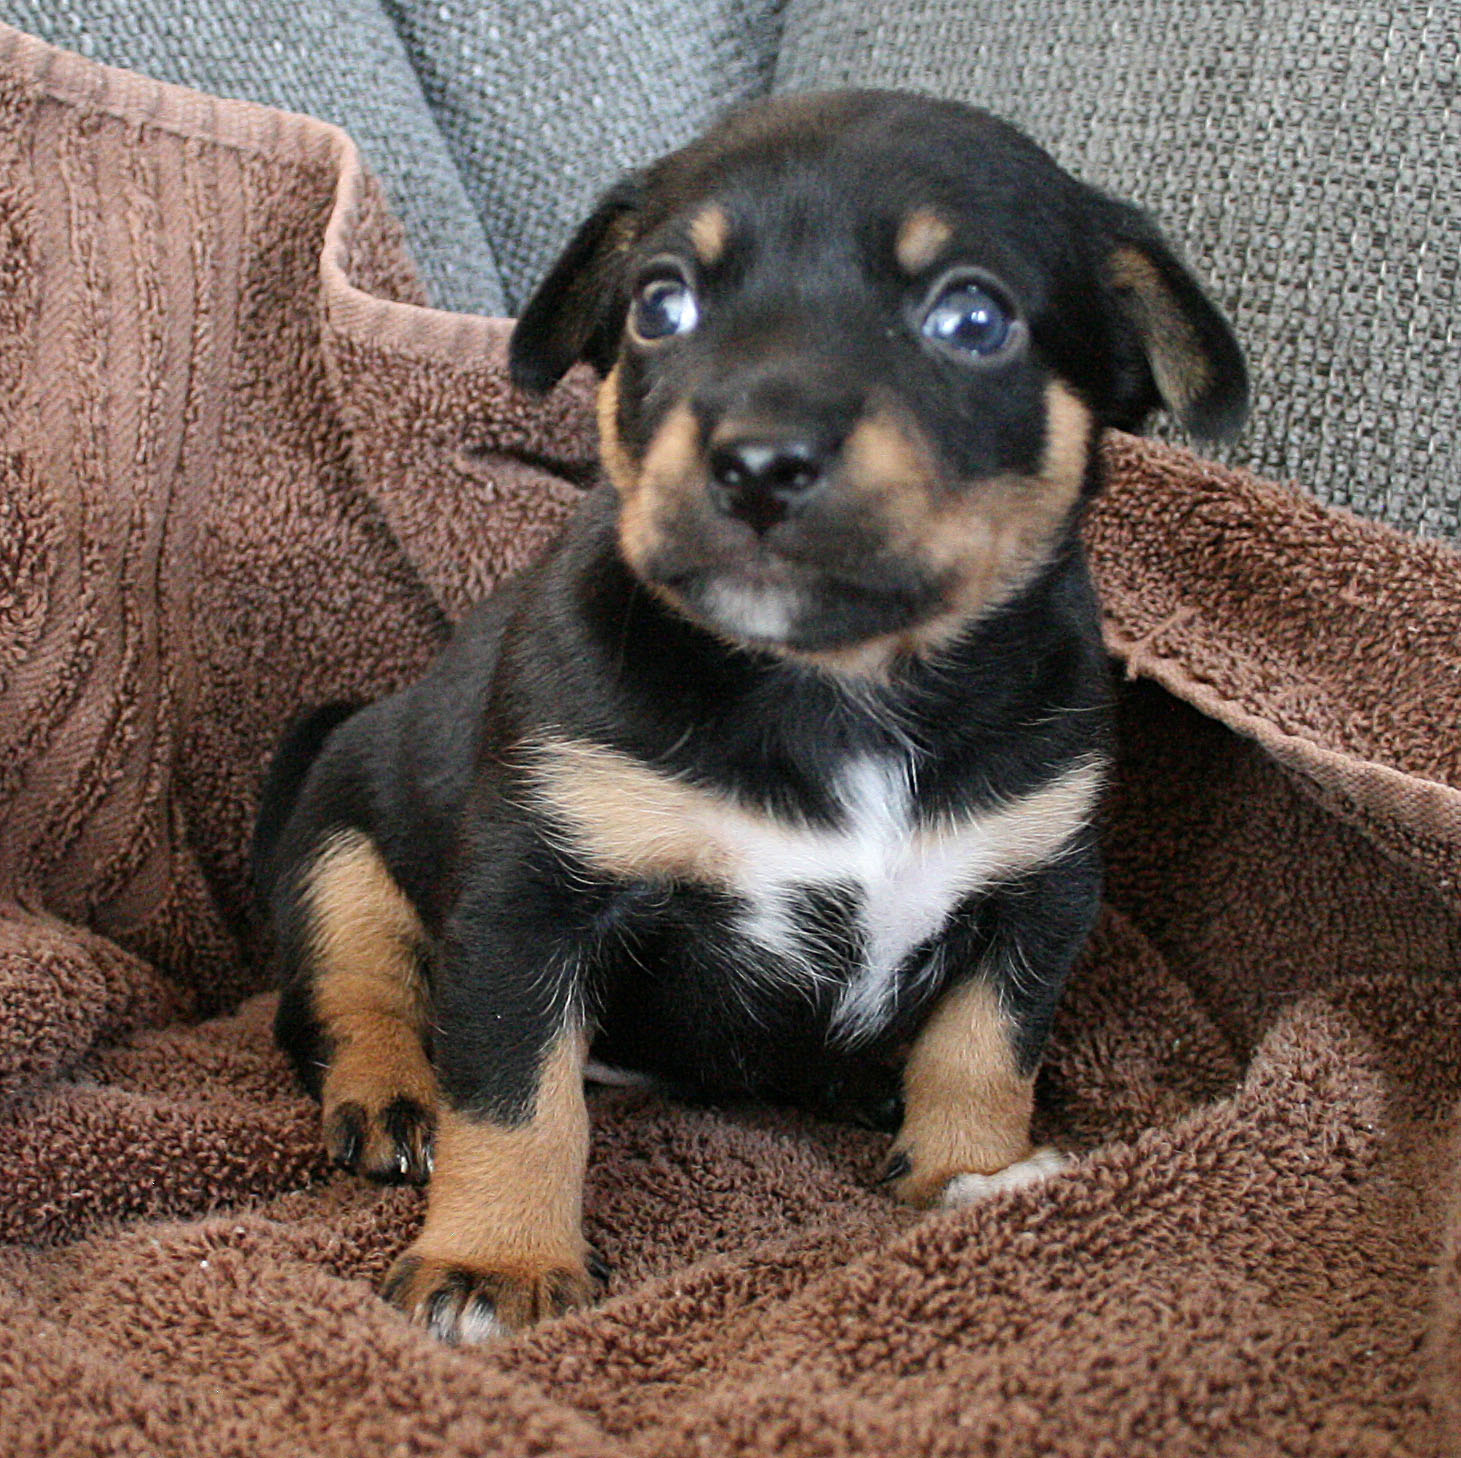 miniature pinscher puppies picture Book Covers